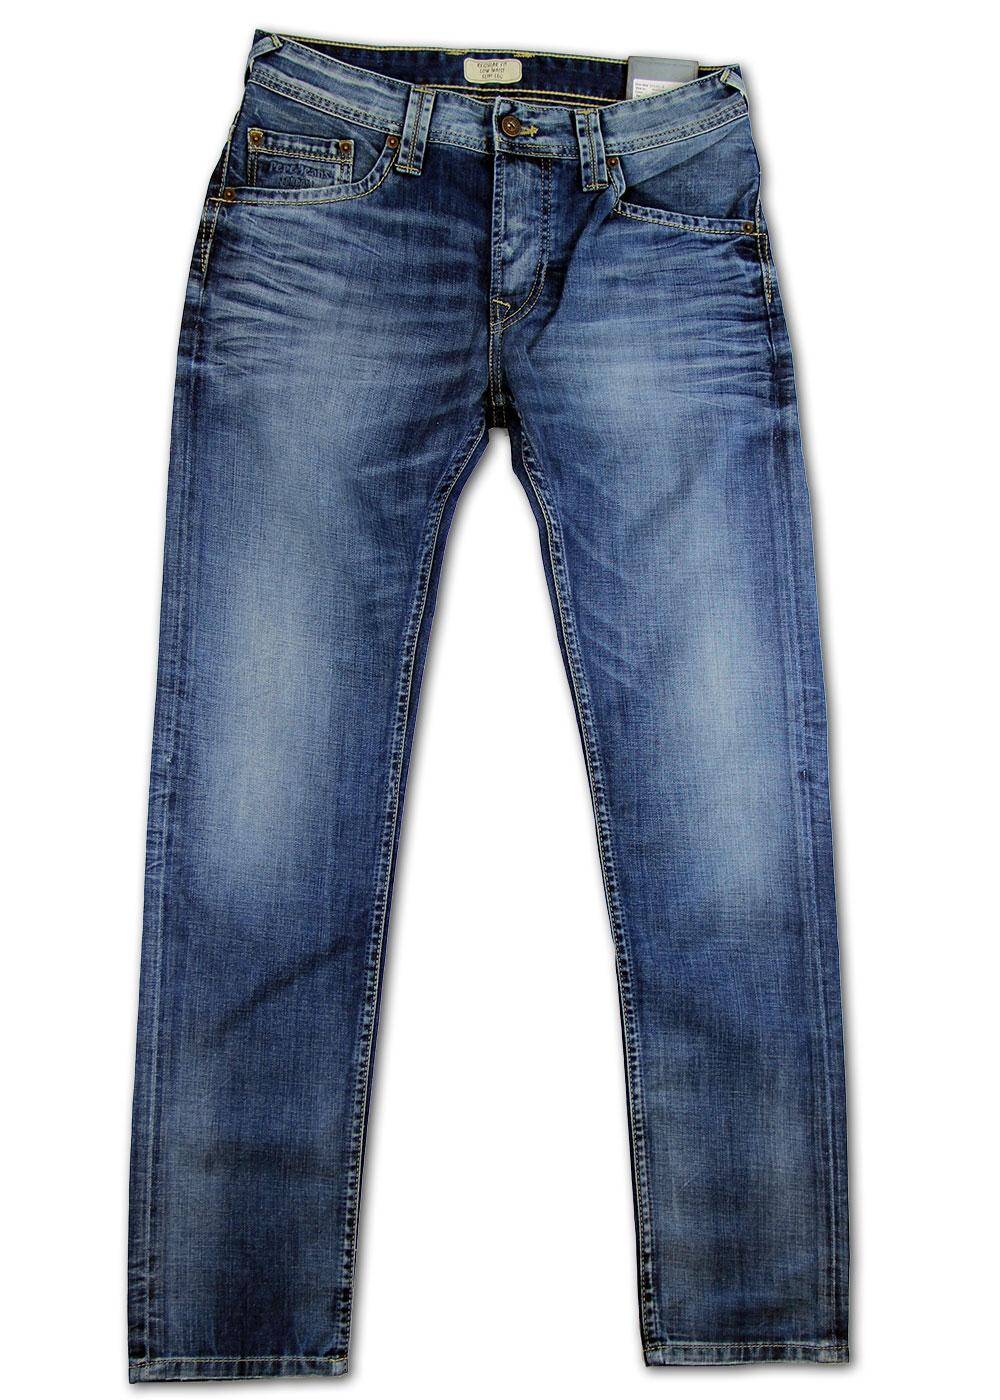 Colville PEPE JEANS Slim Tapered Fit Retro Jeans